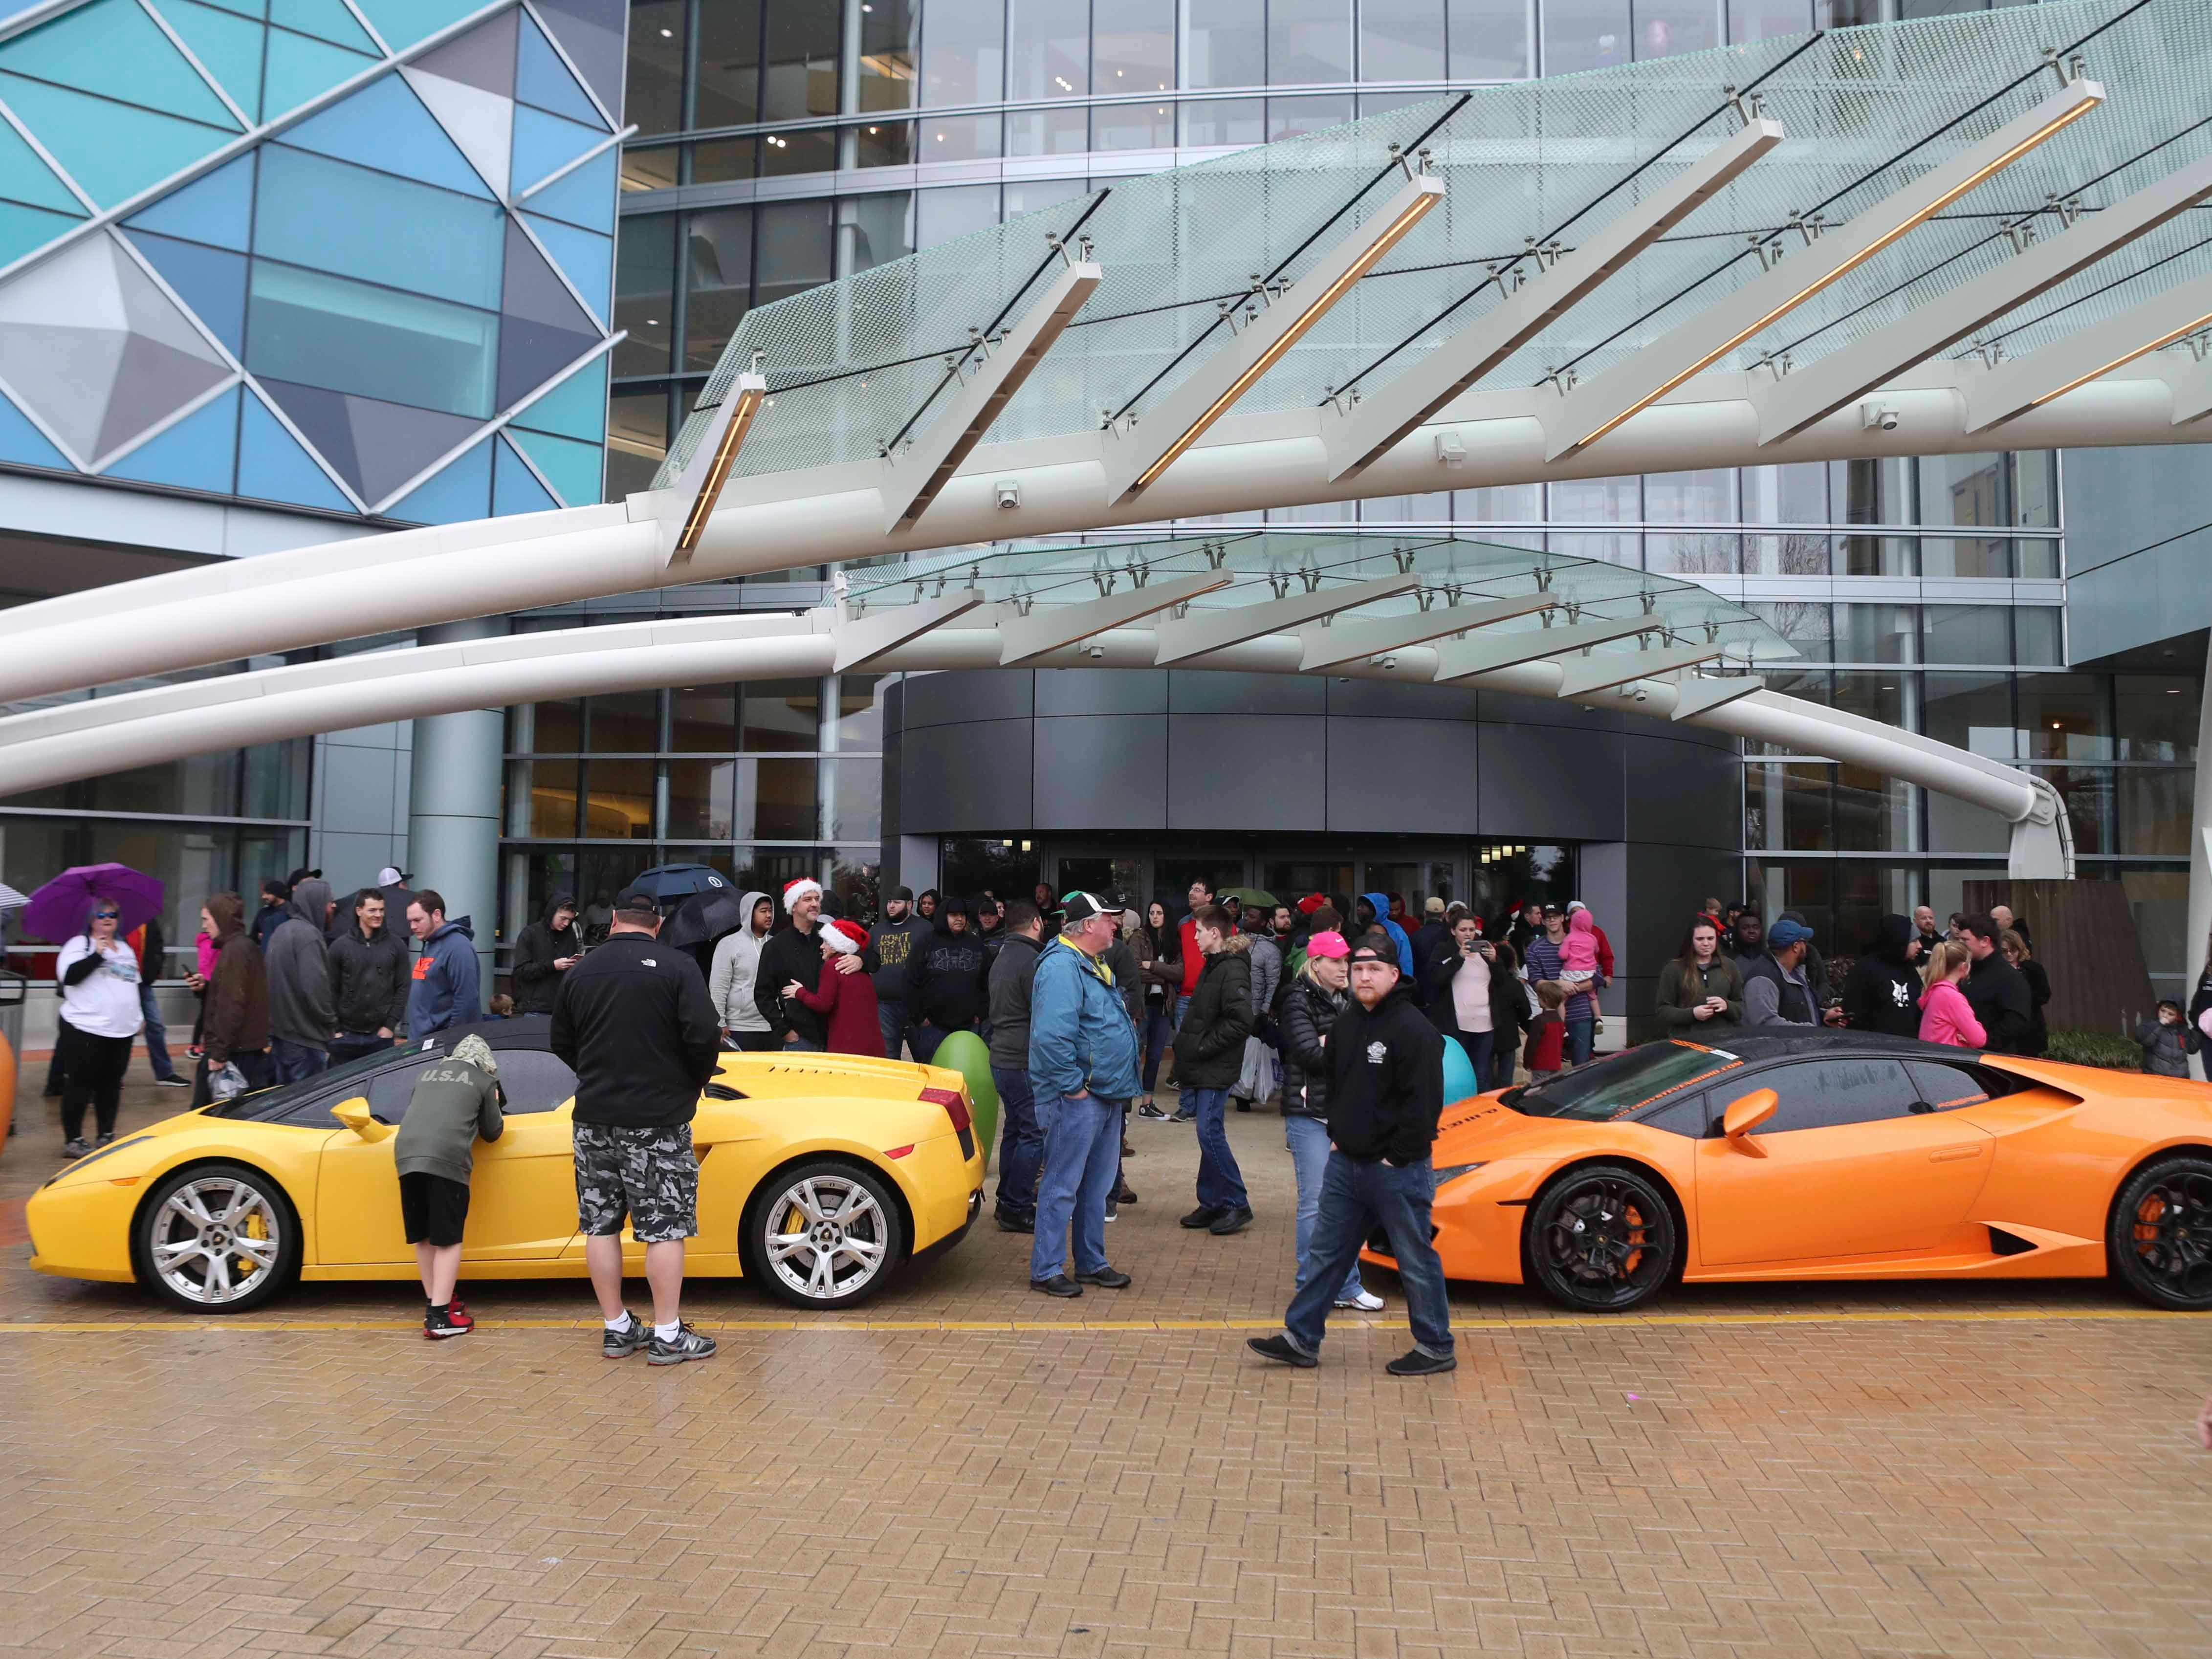 Cars and Coffee club members conduct a toy drive and drive big toys to the Nemours/A.I. duPont Hospital for Children Saturday. Hundreds of cars converged on the hospital as car enthusiasts showed off their flashy rides for patients and brought in cartloads of toys for Christmas.